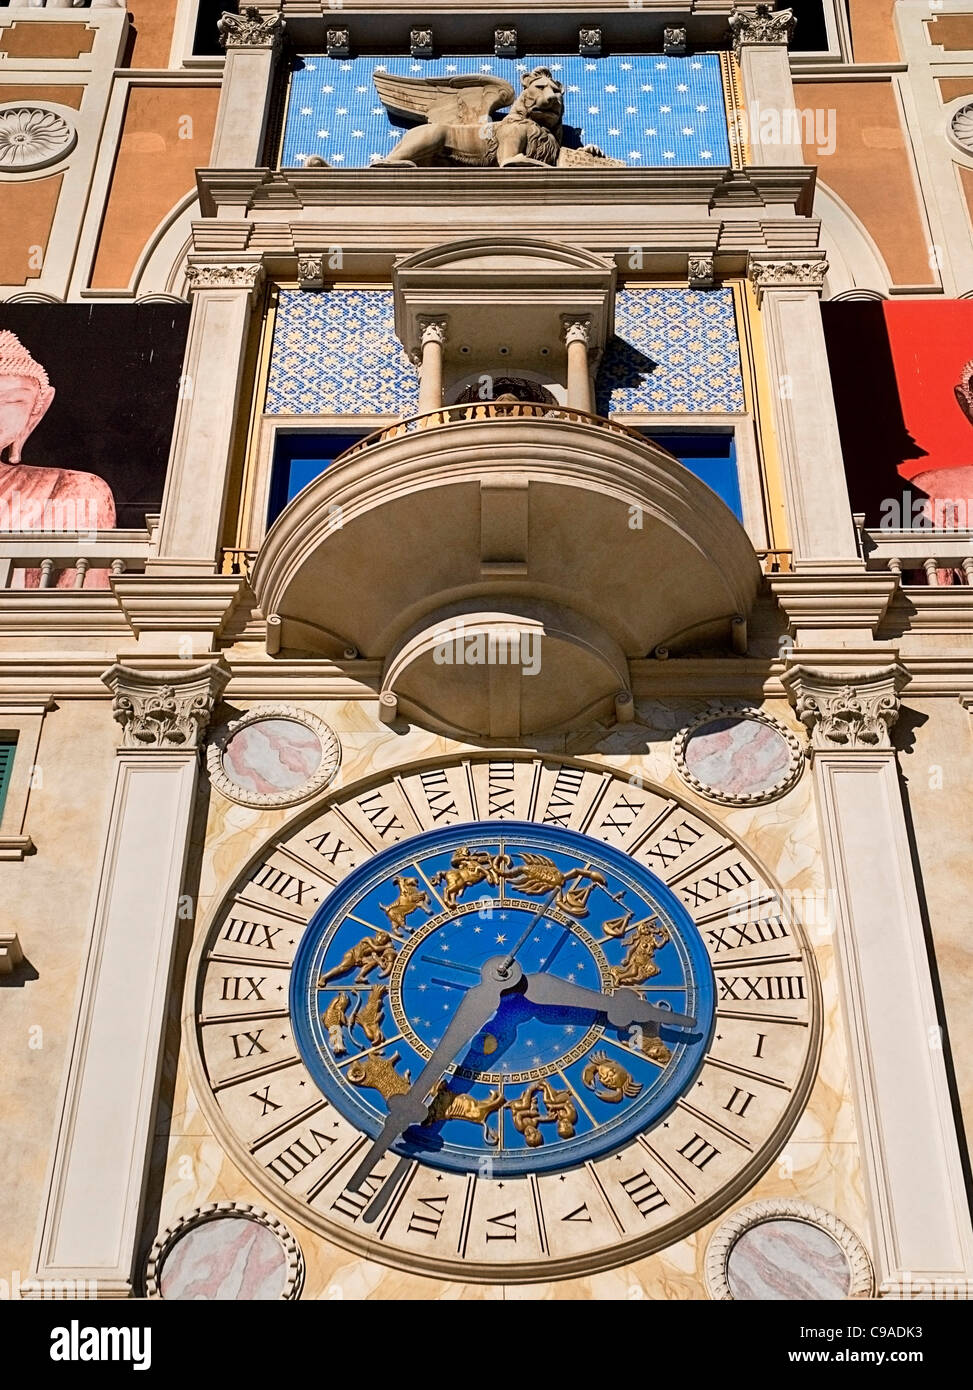 USA, Nevada, Las Vegas, The Strip, clock detail above the entrance to the Venetian hotel and casino. Stock Photo